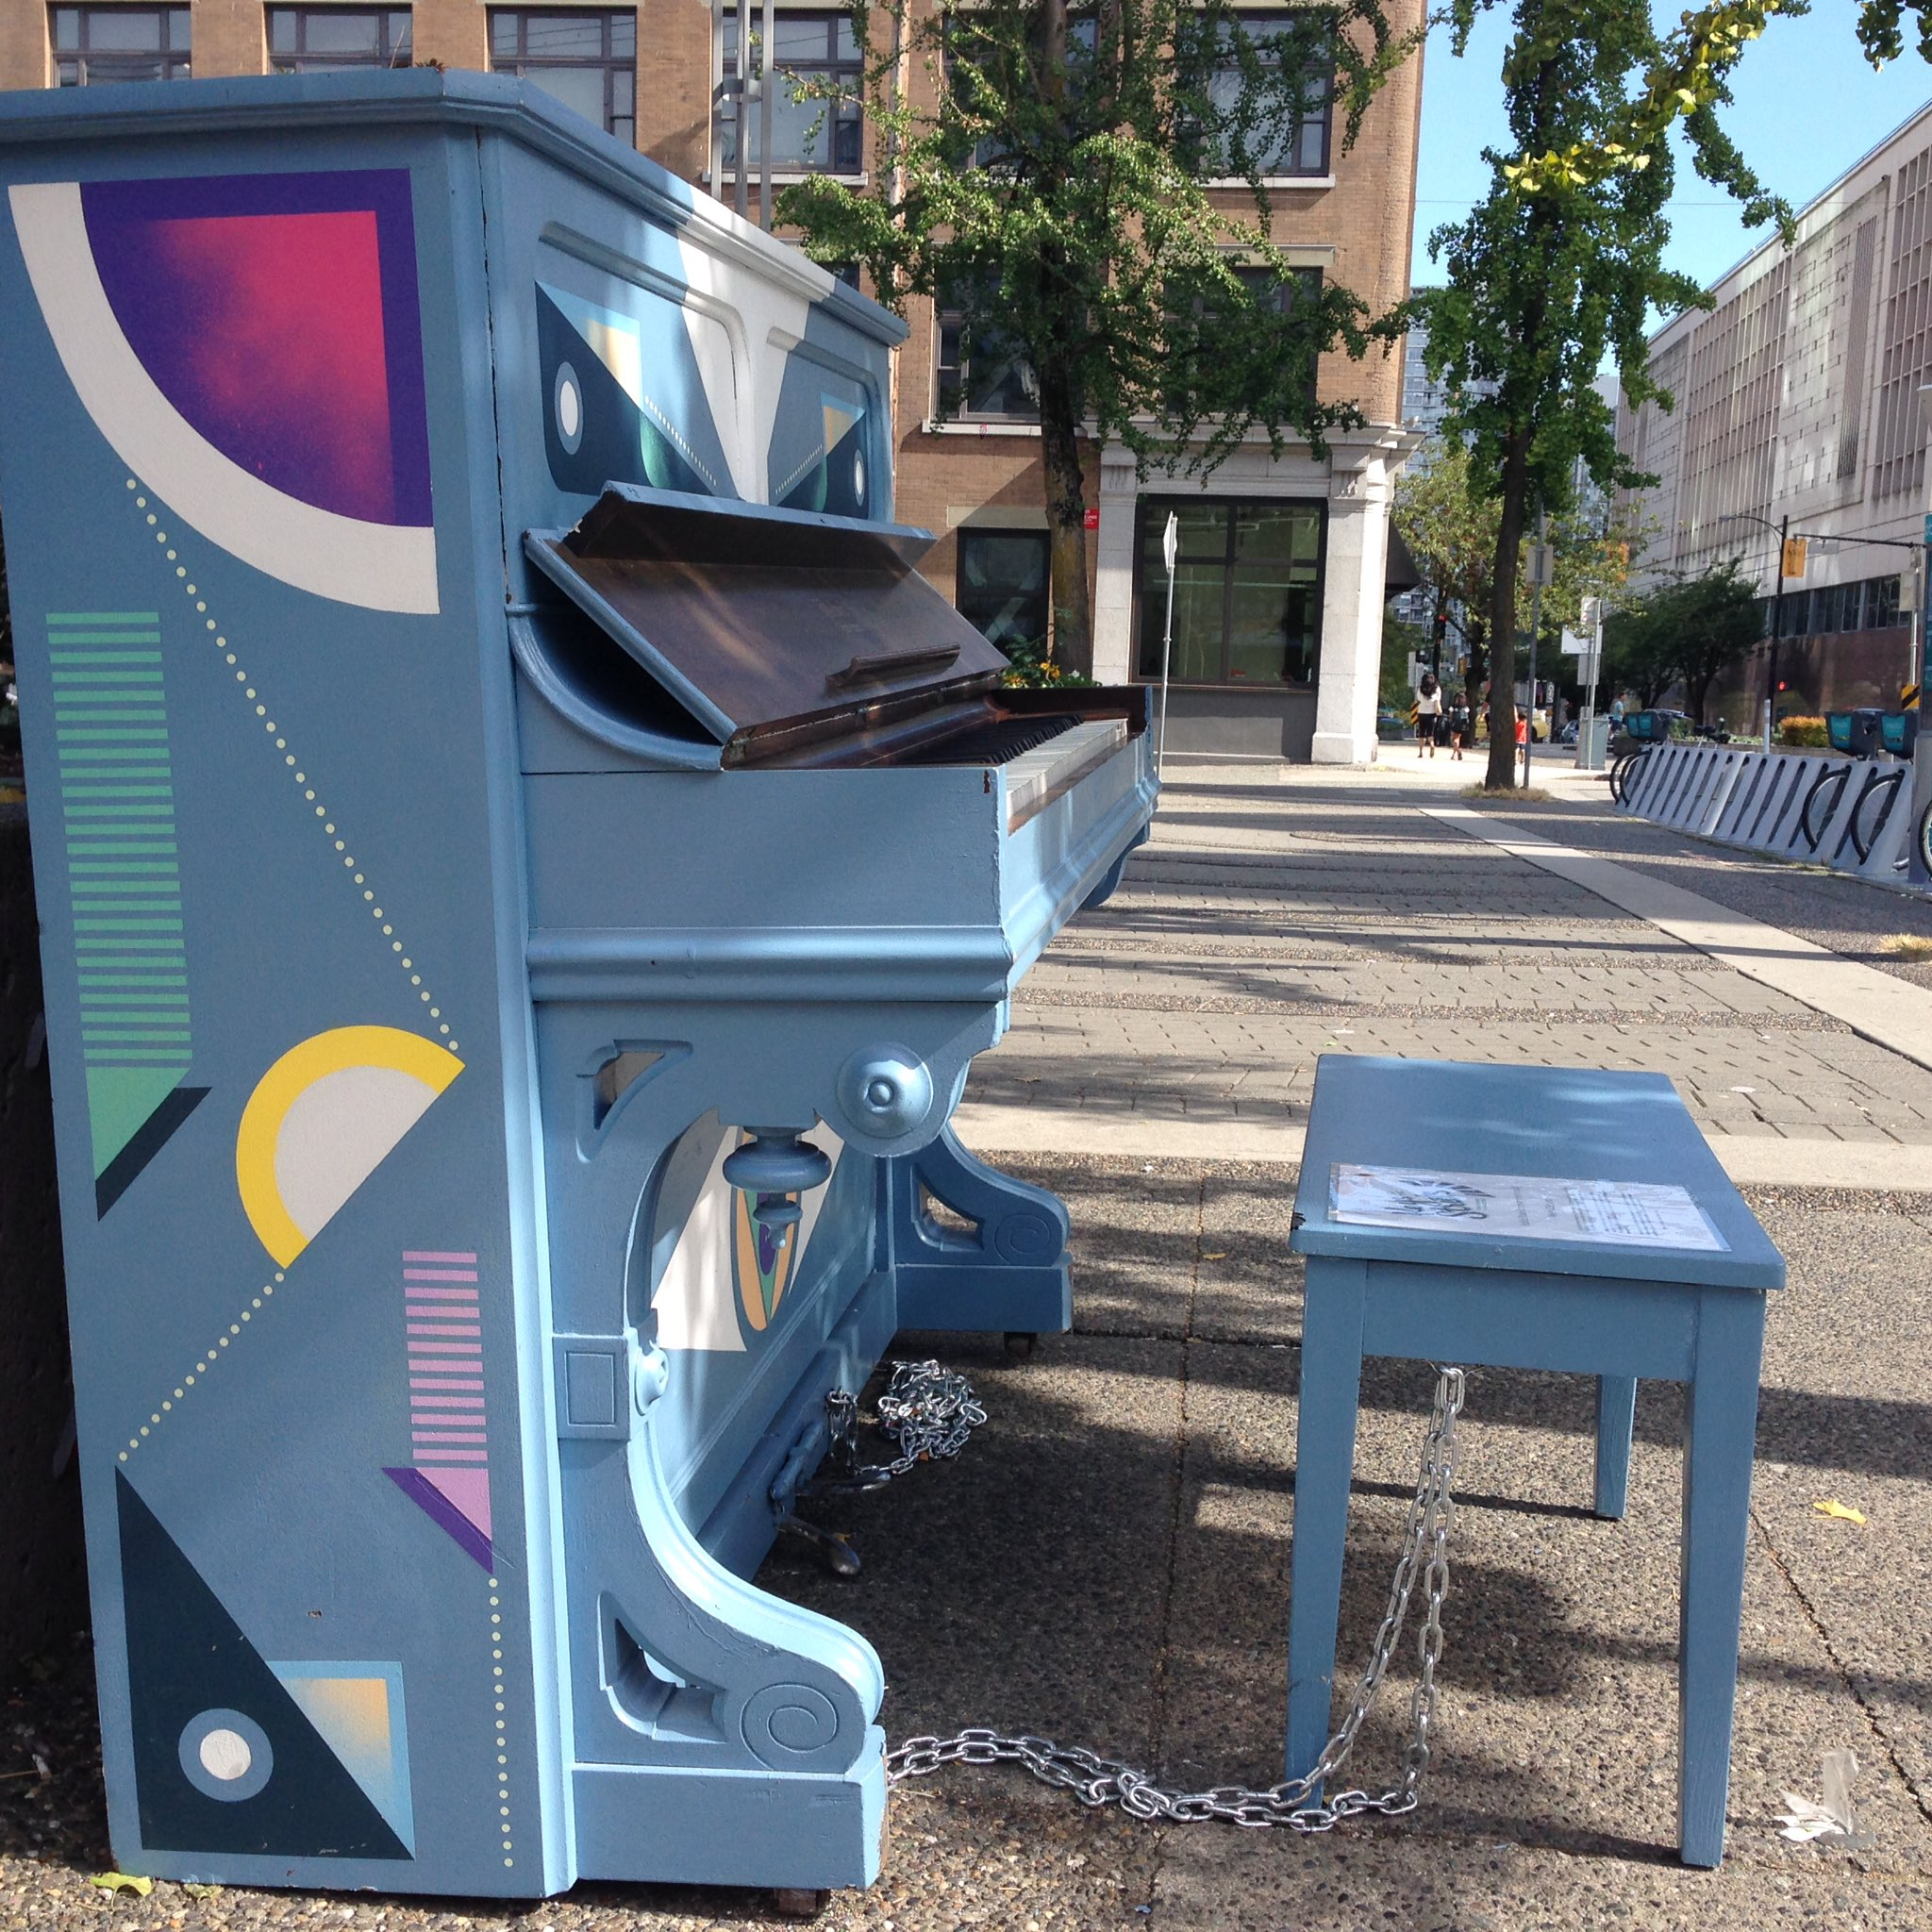 The easiest piano to play trills on was Cathedral Square on Richards. @Keys2Streets #keys2streets https://t.co/Dk4s7Cr9ah